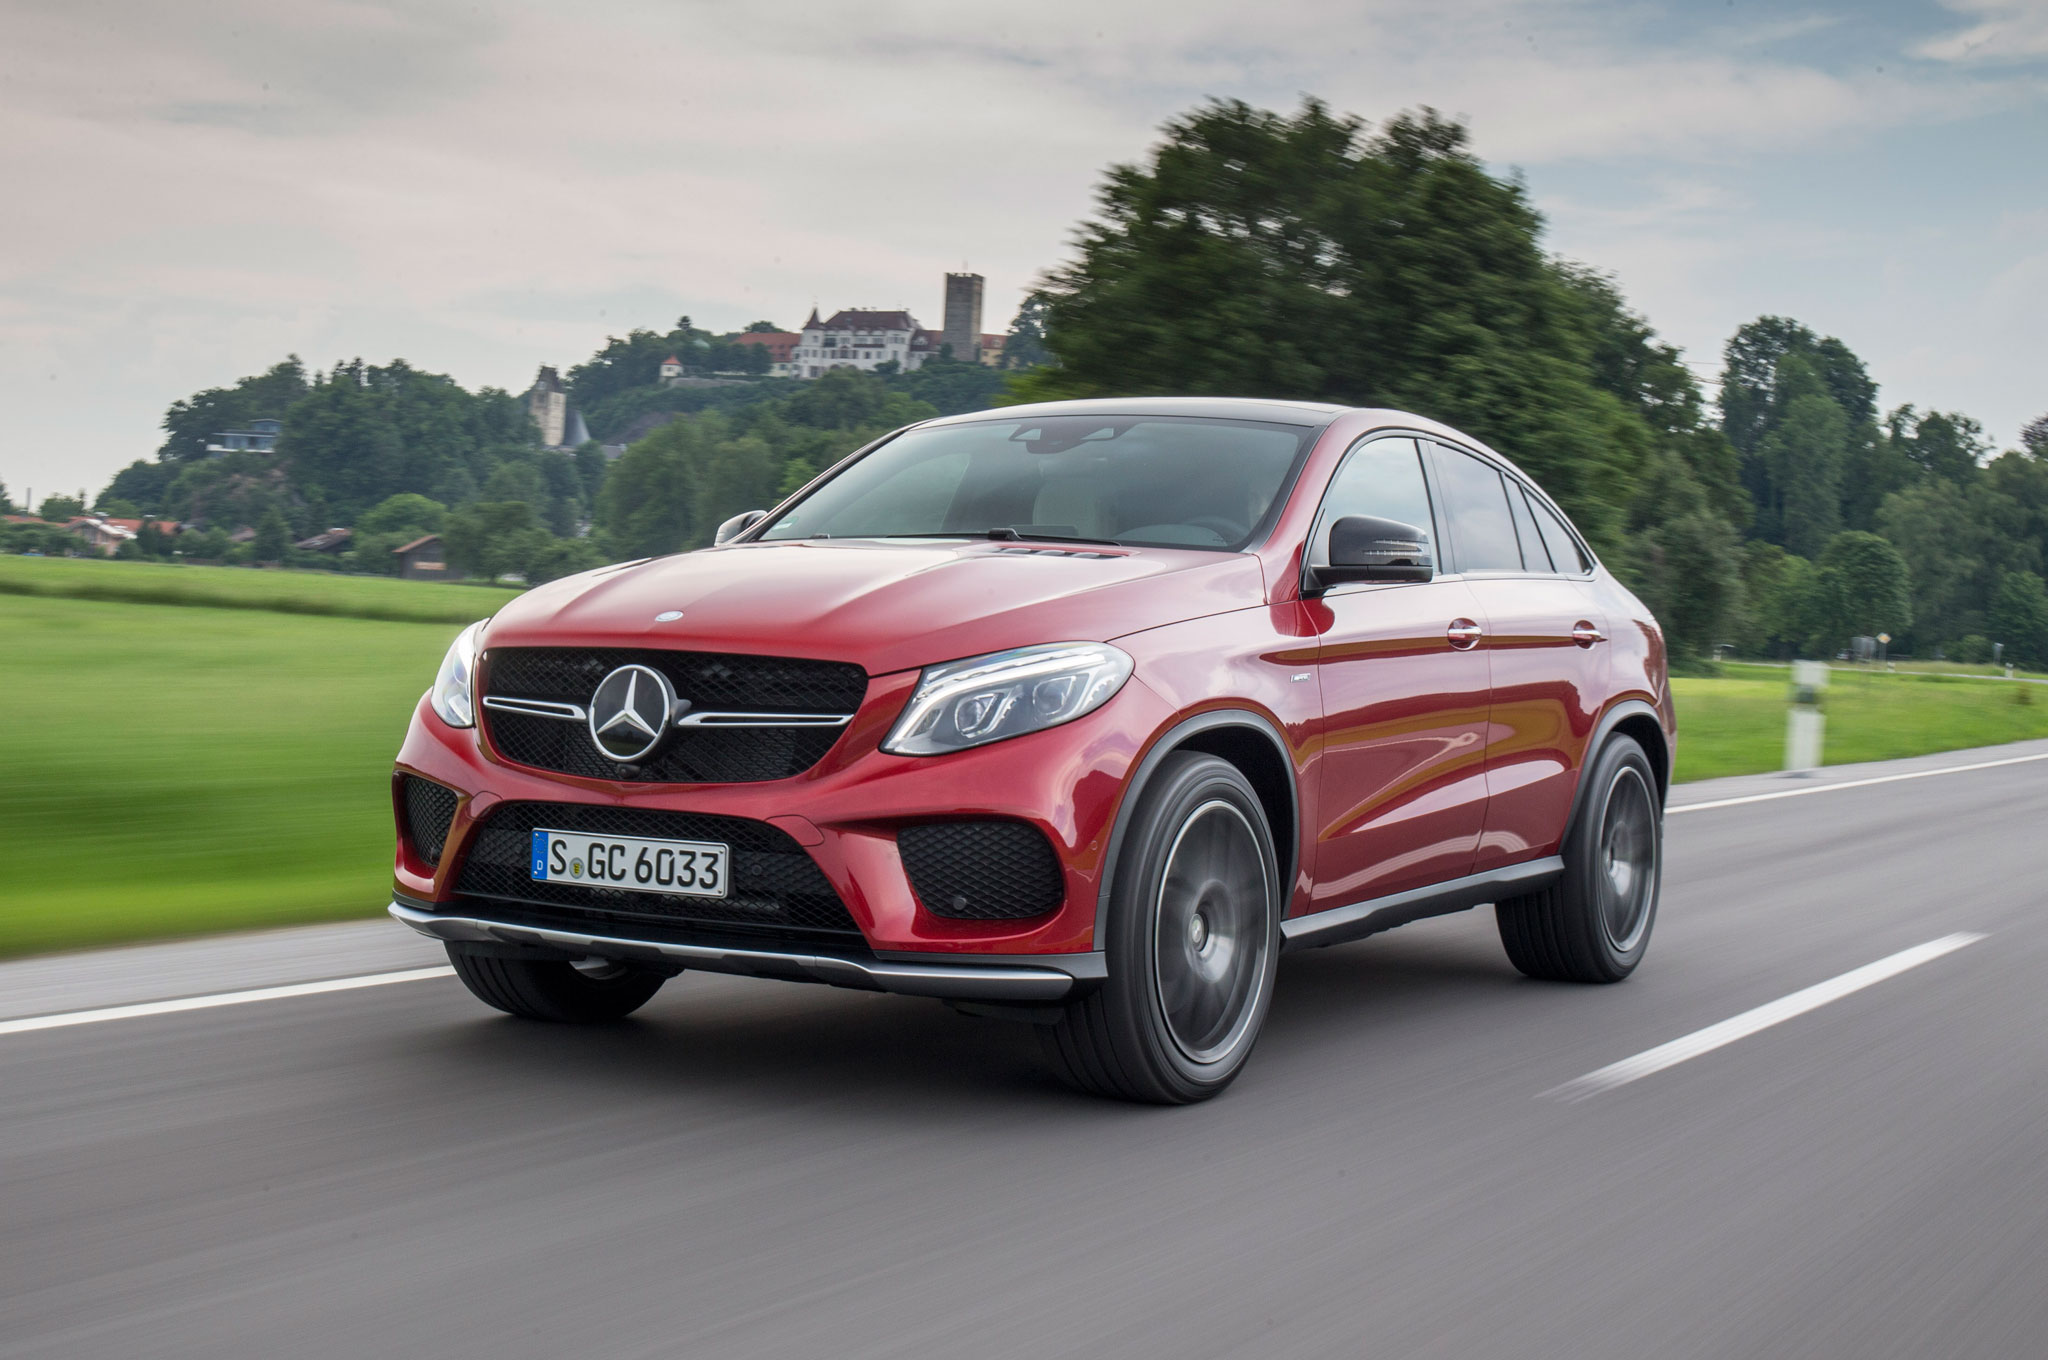 2016 mercedes benz gle450 amg 4matic coupe review for Mercedes benz ml 450